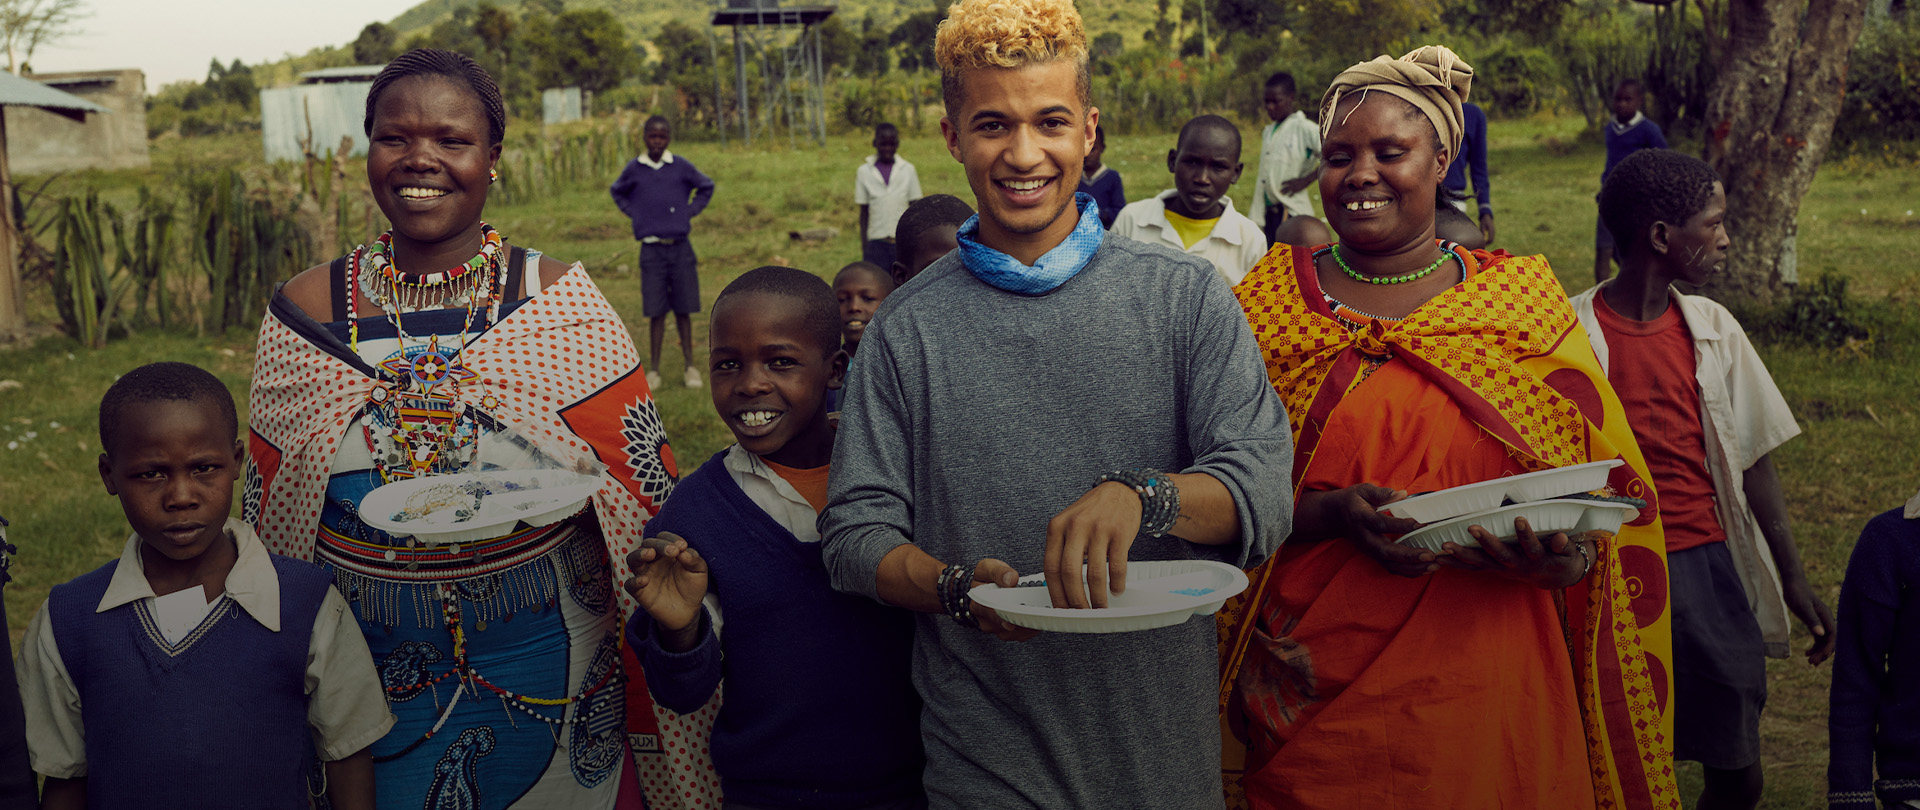 holiday-talent-pages-v2jordan-fisher_banner_desktop.jpg